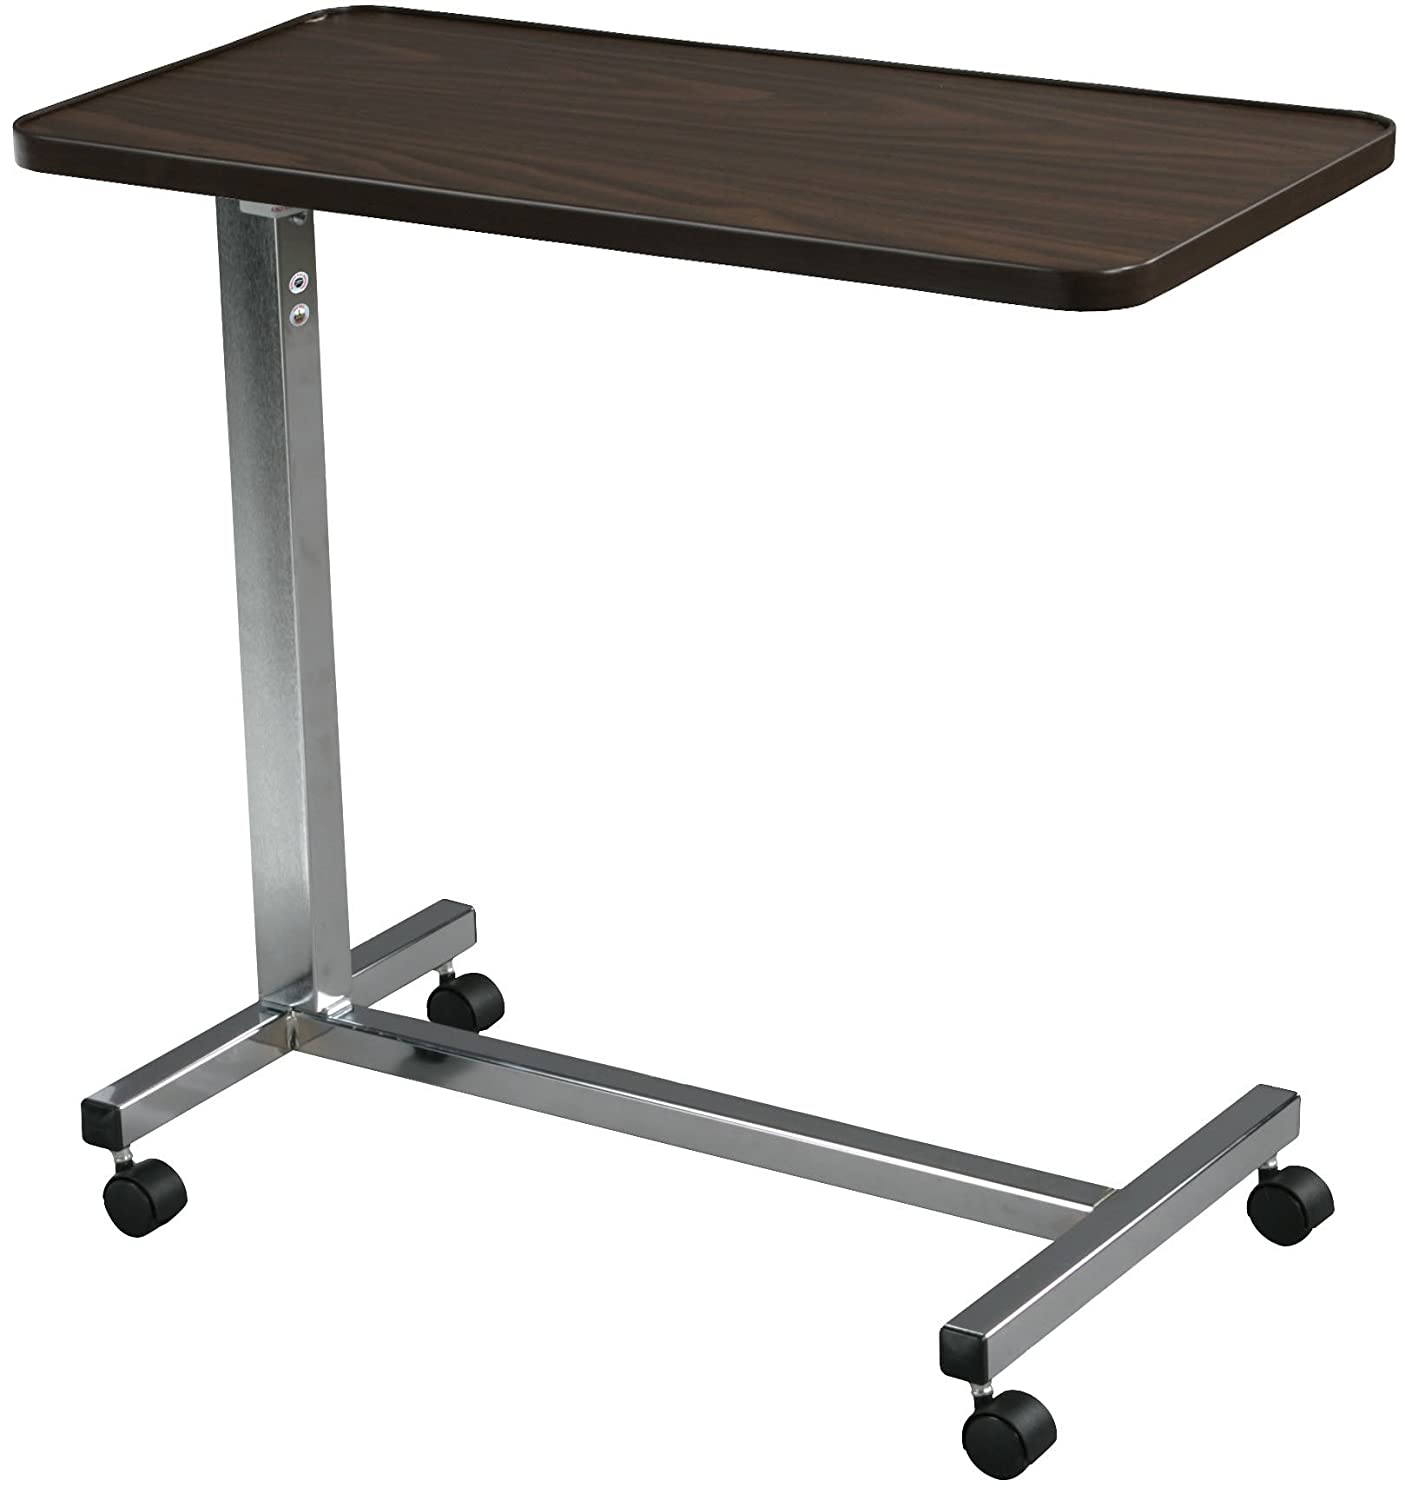 kg height prod table pleto co tilting stiegelmeyer overbed gmbh product adjustable casters on